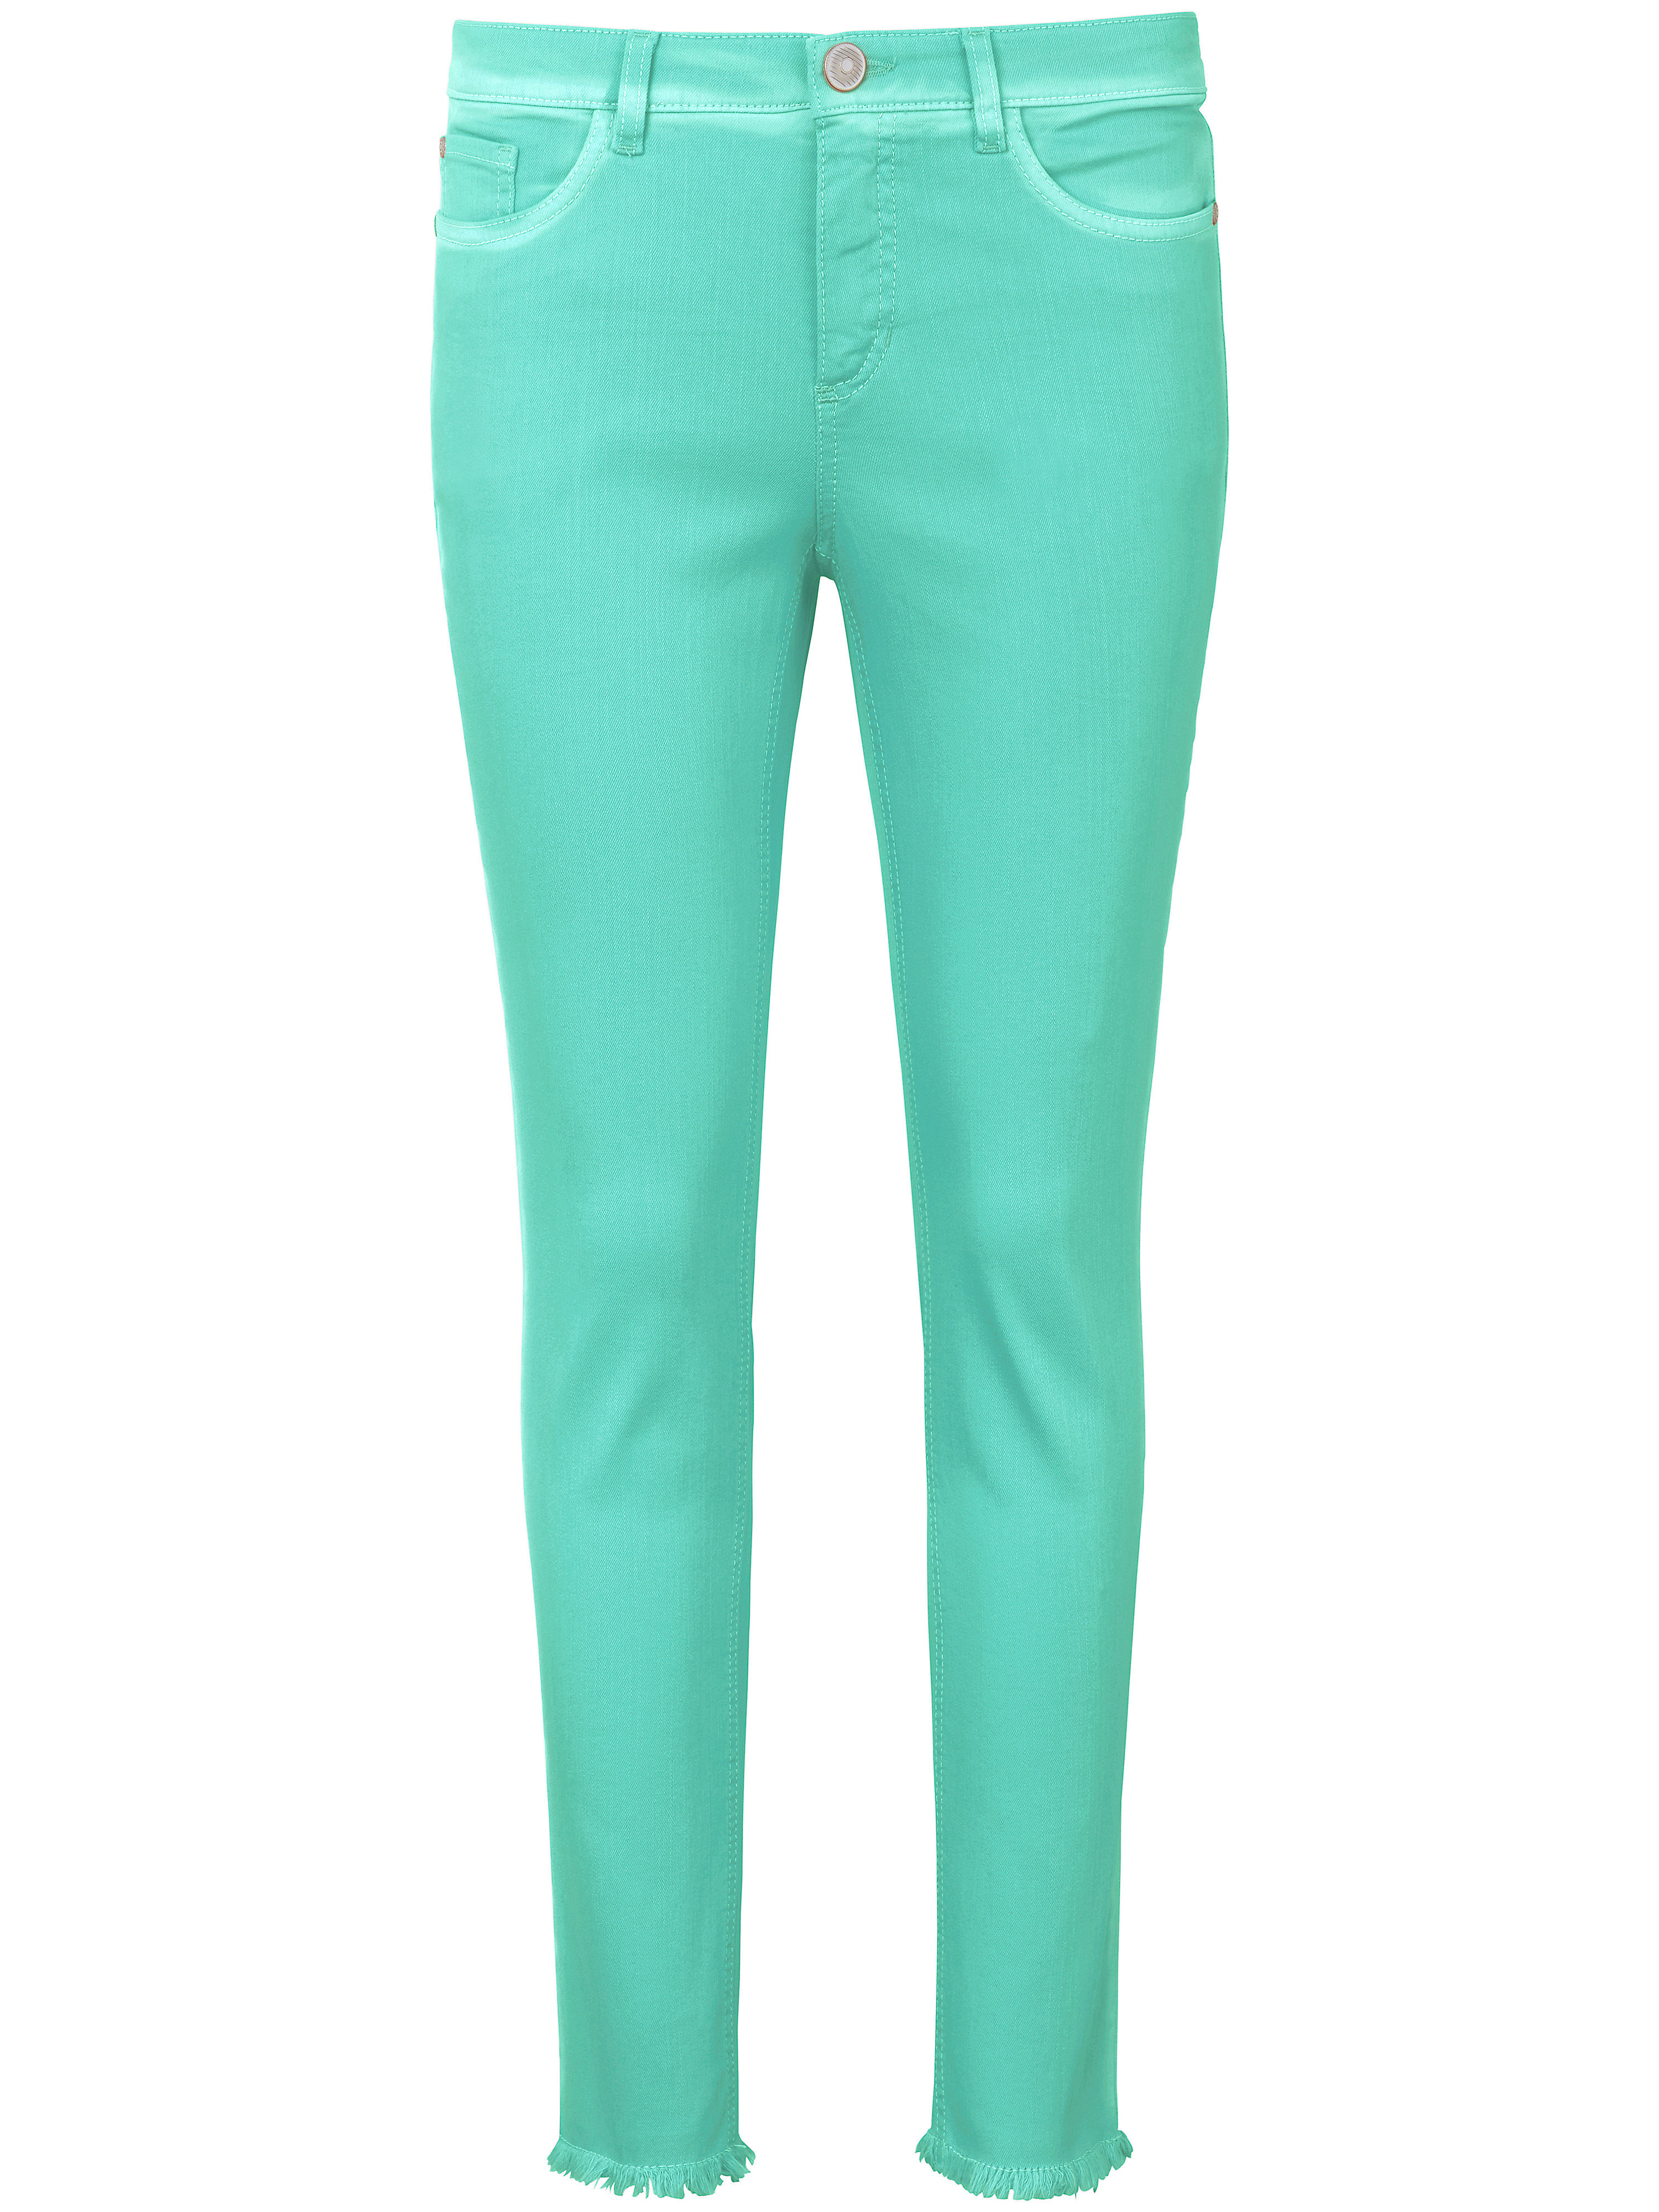 Le jean longueur chevilles coupe Barbara  Peter Hahn turquoise taille 21